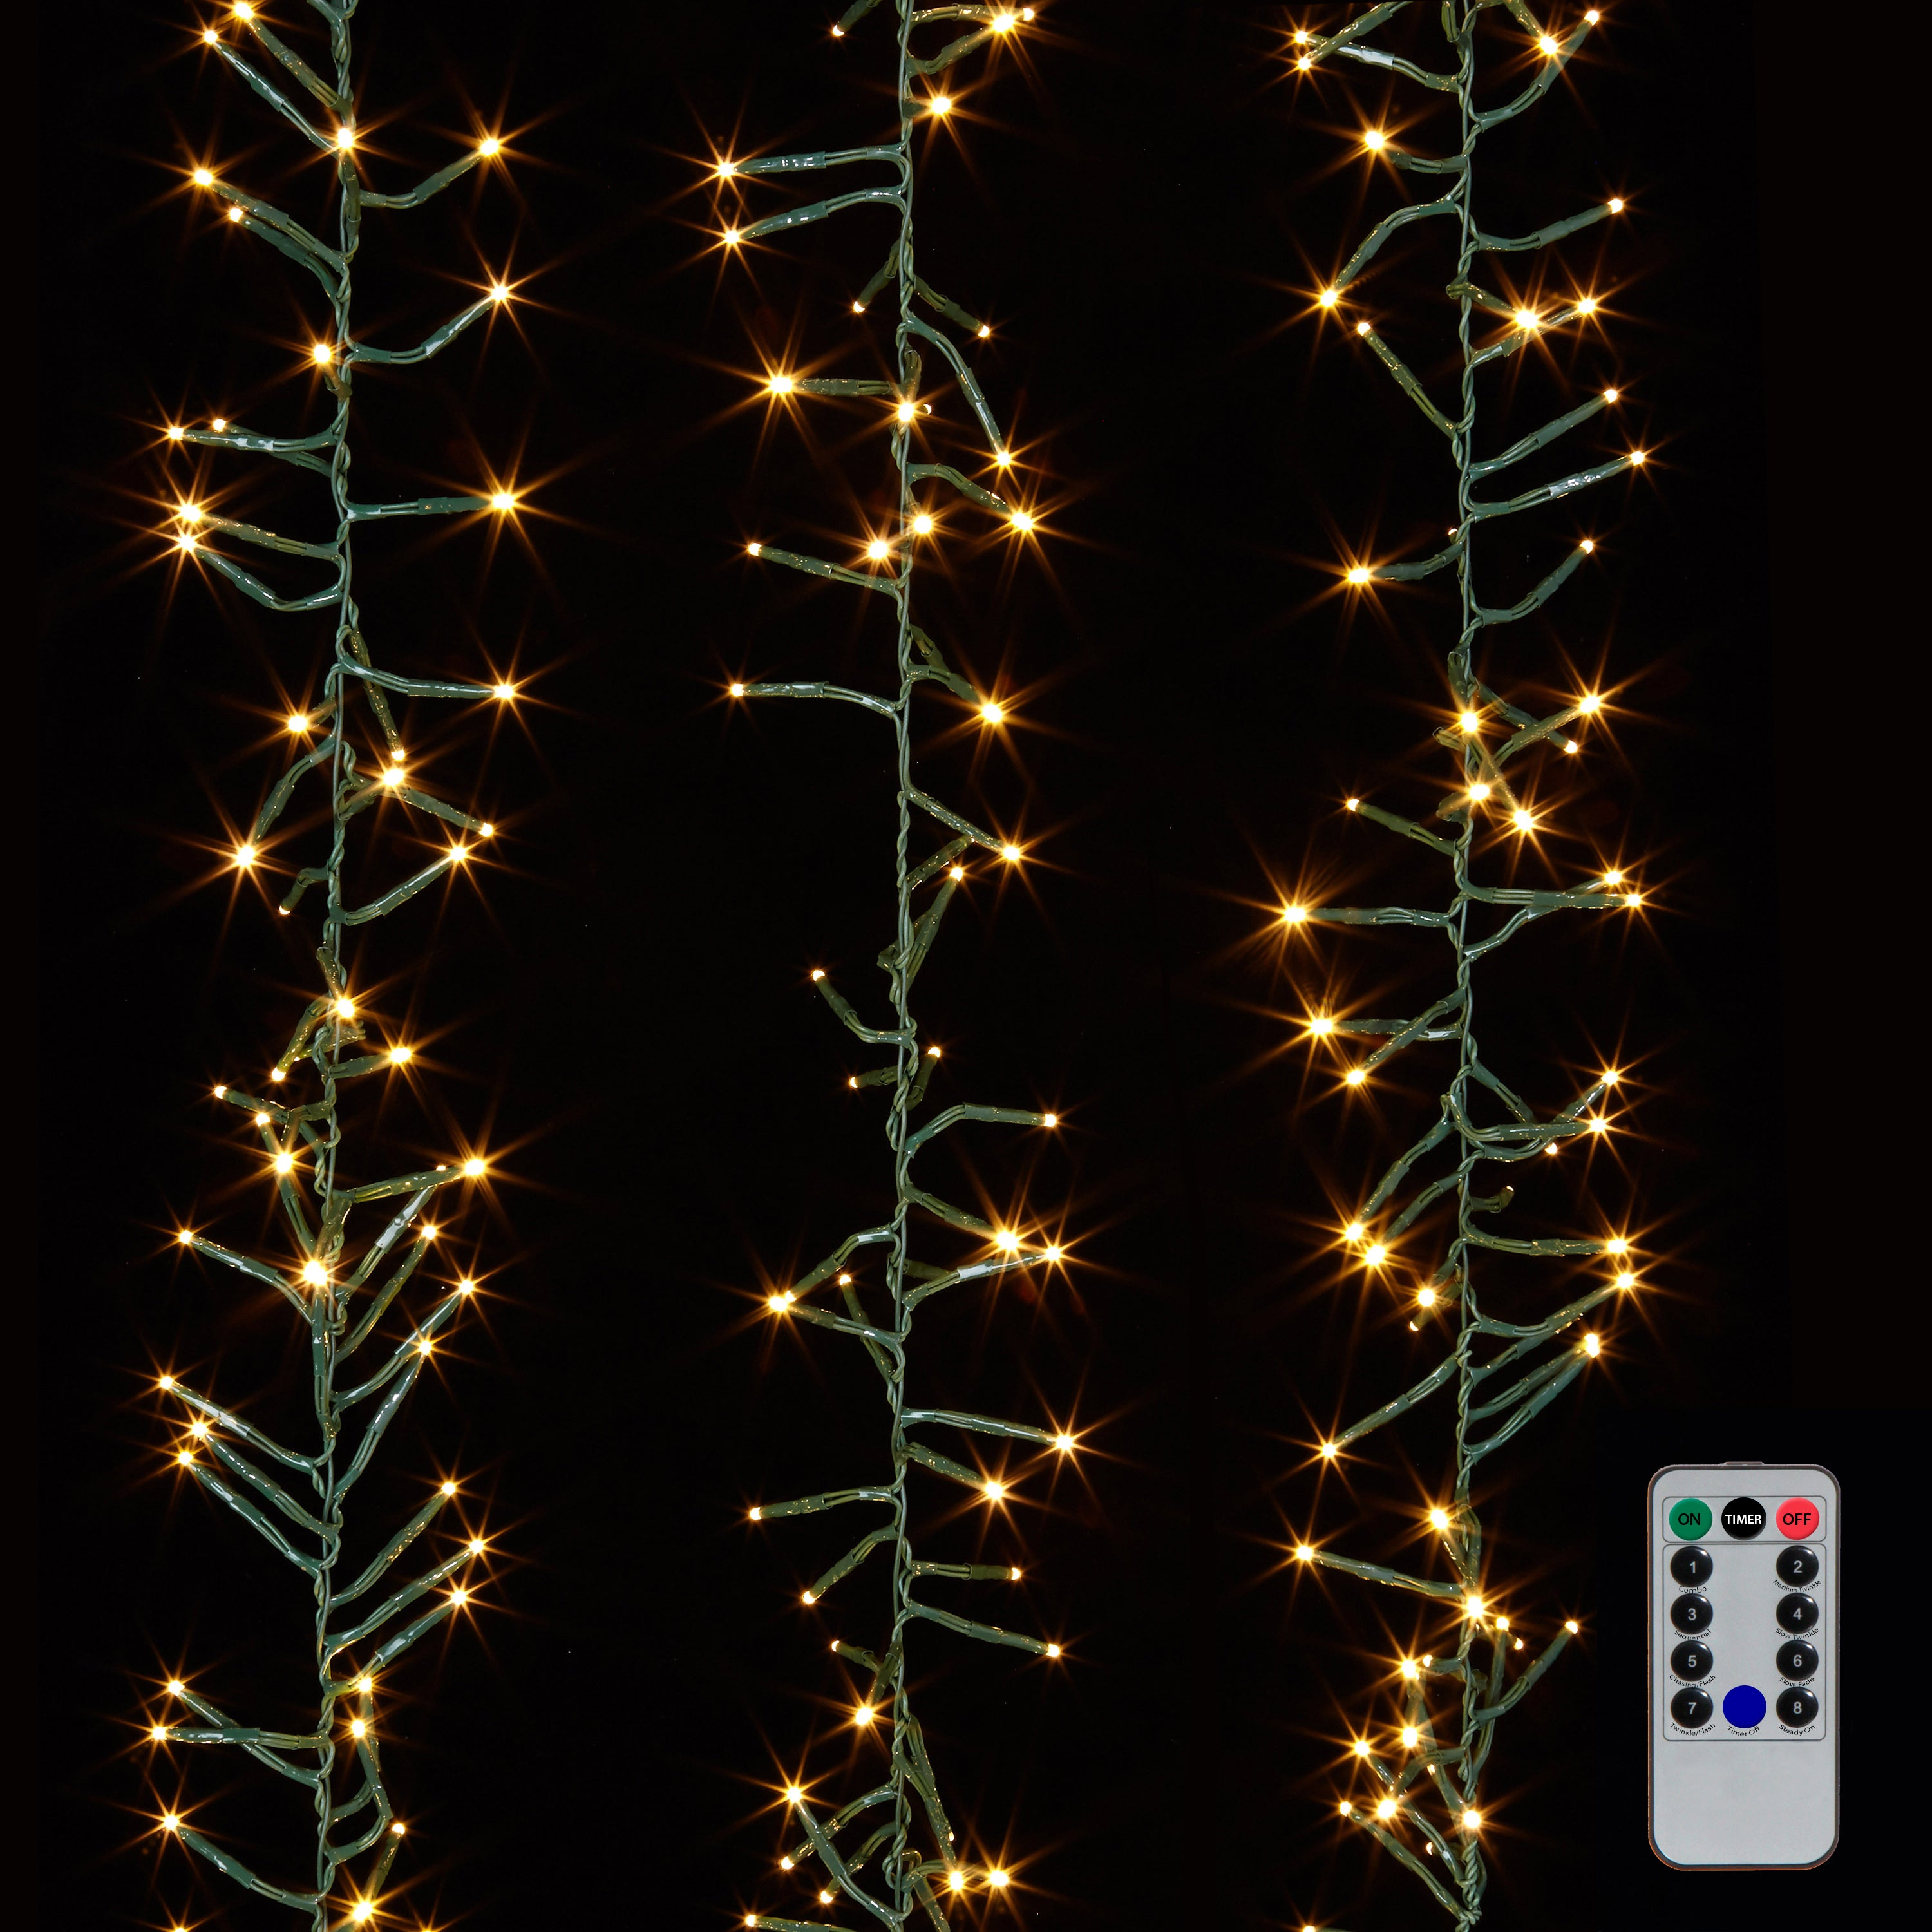 RAZ Imports LED Cluster Garland Christmas Lights With Remote